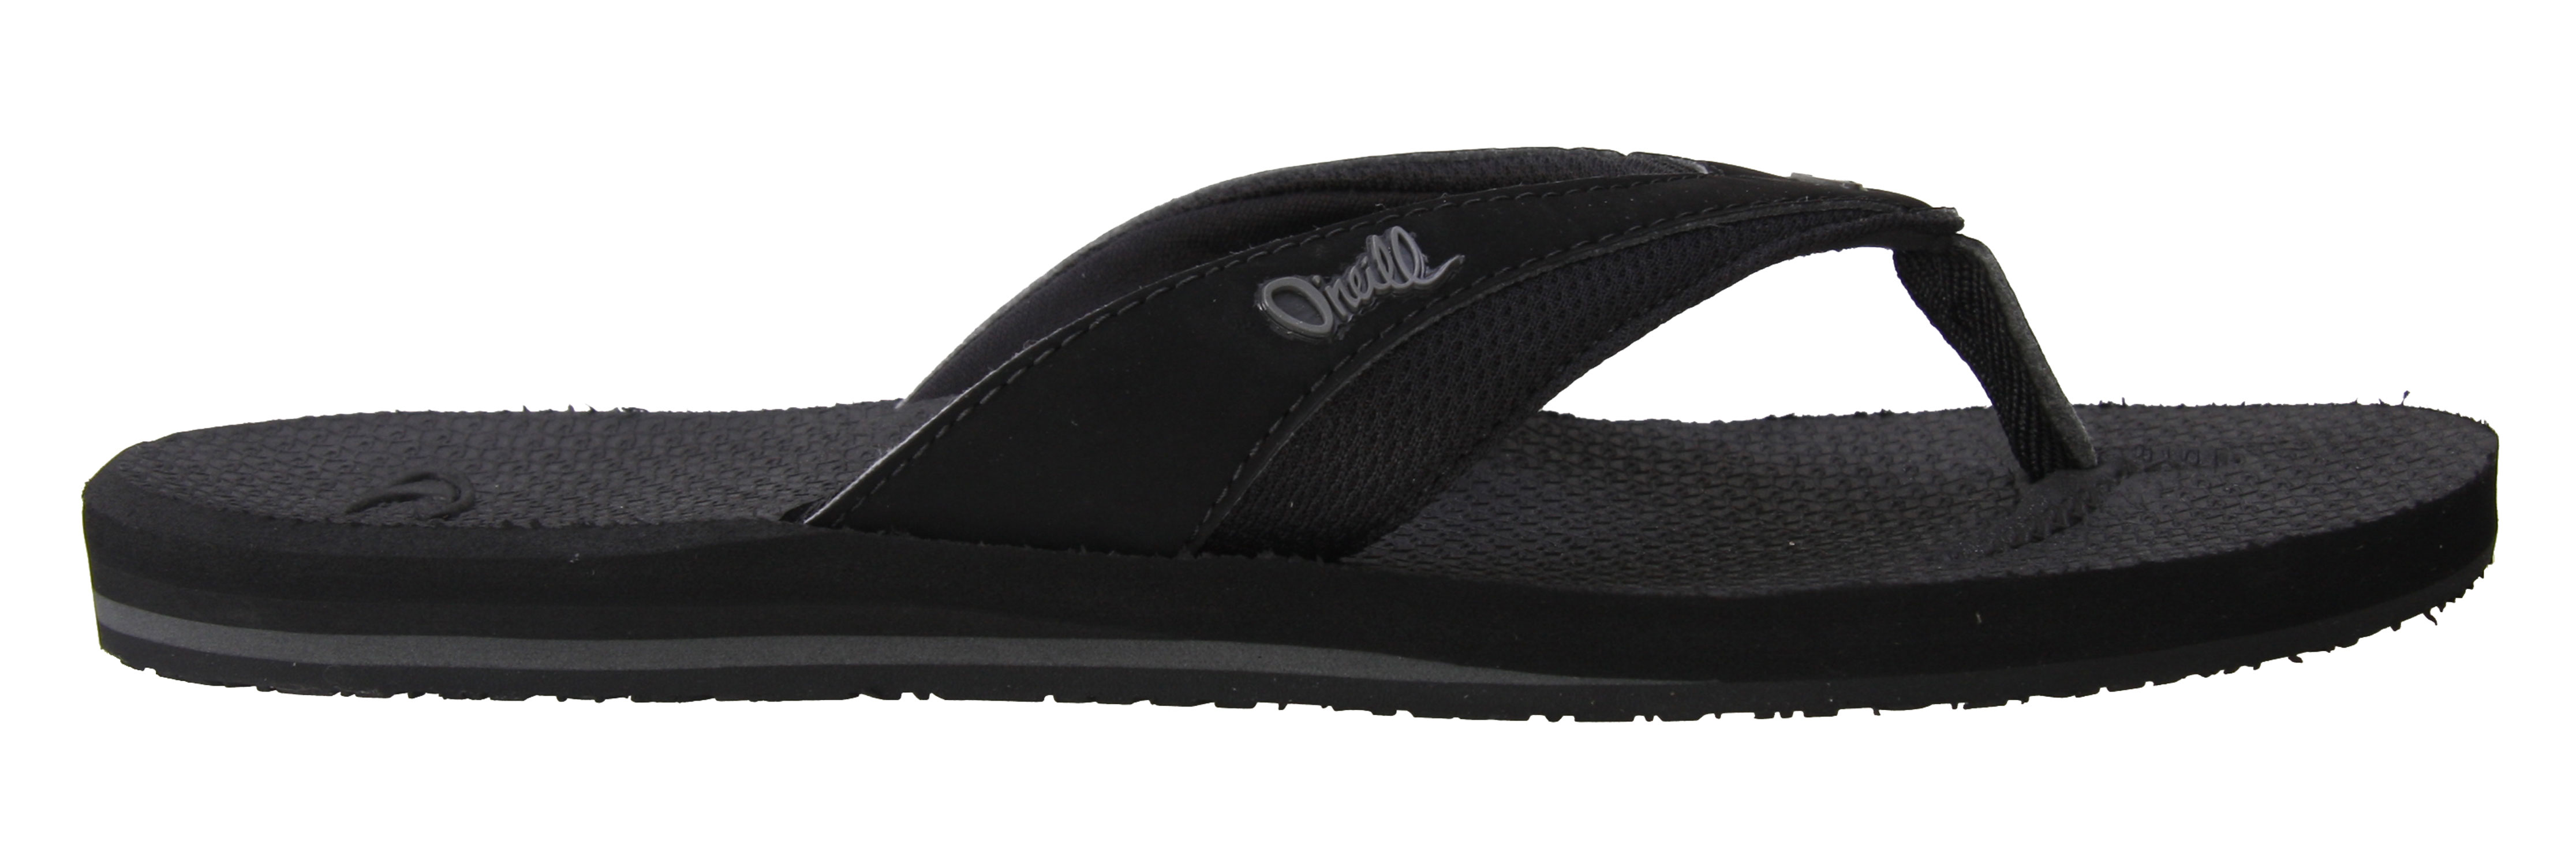 Surf Perfectly casual and comfortable, the O'Neill Tron Sandals are great for summer. It features a synthetic and water friendly upper, contoured molded footbed, constructed arch support, and rubber outsoles, all great features bundled into one great pair of sandals. So, why not rock it out? So simple and classic in design, wear them all summer long.Key Features of The O'Neill Tron Sandals: Synthetic Nubuck/Mesh Water Friendly Upper Neoprene Lining on Strap Contoured Compression Molded EVA Footbed Anatomically Constructed Arch Support Cosmic Rubber Outsole Silicone Injection Embossed Logos - $16.95